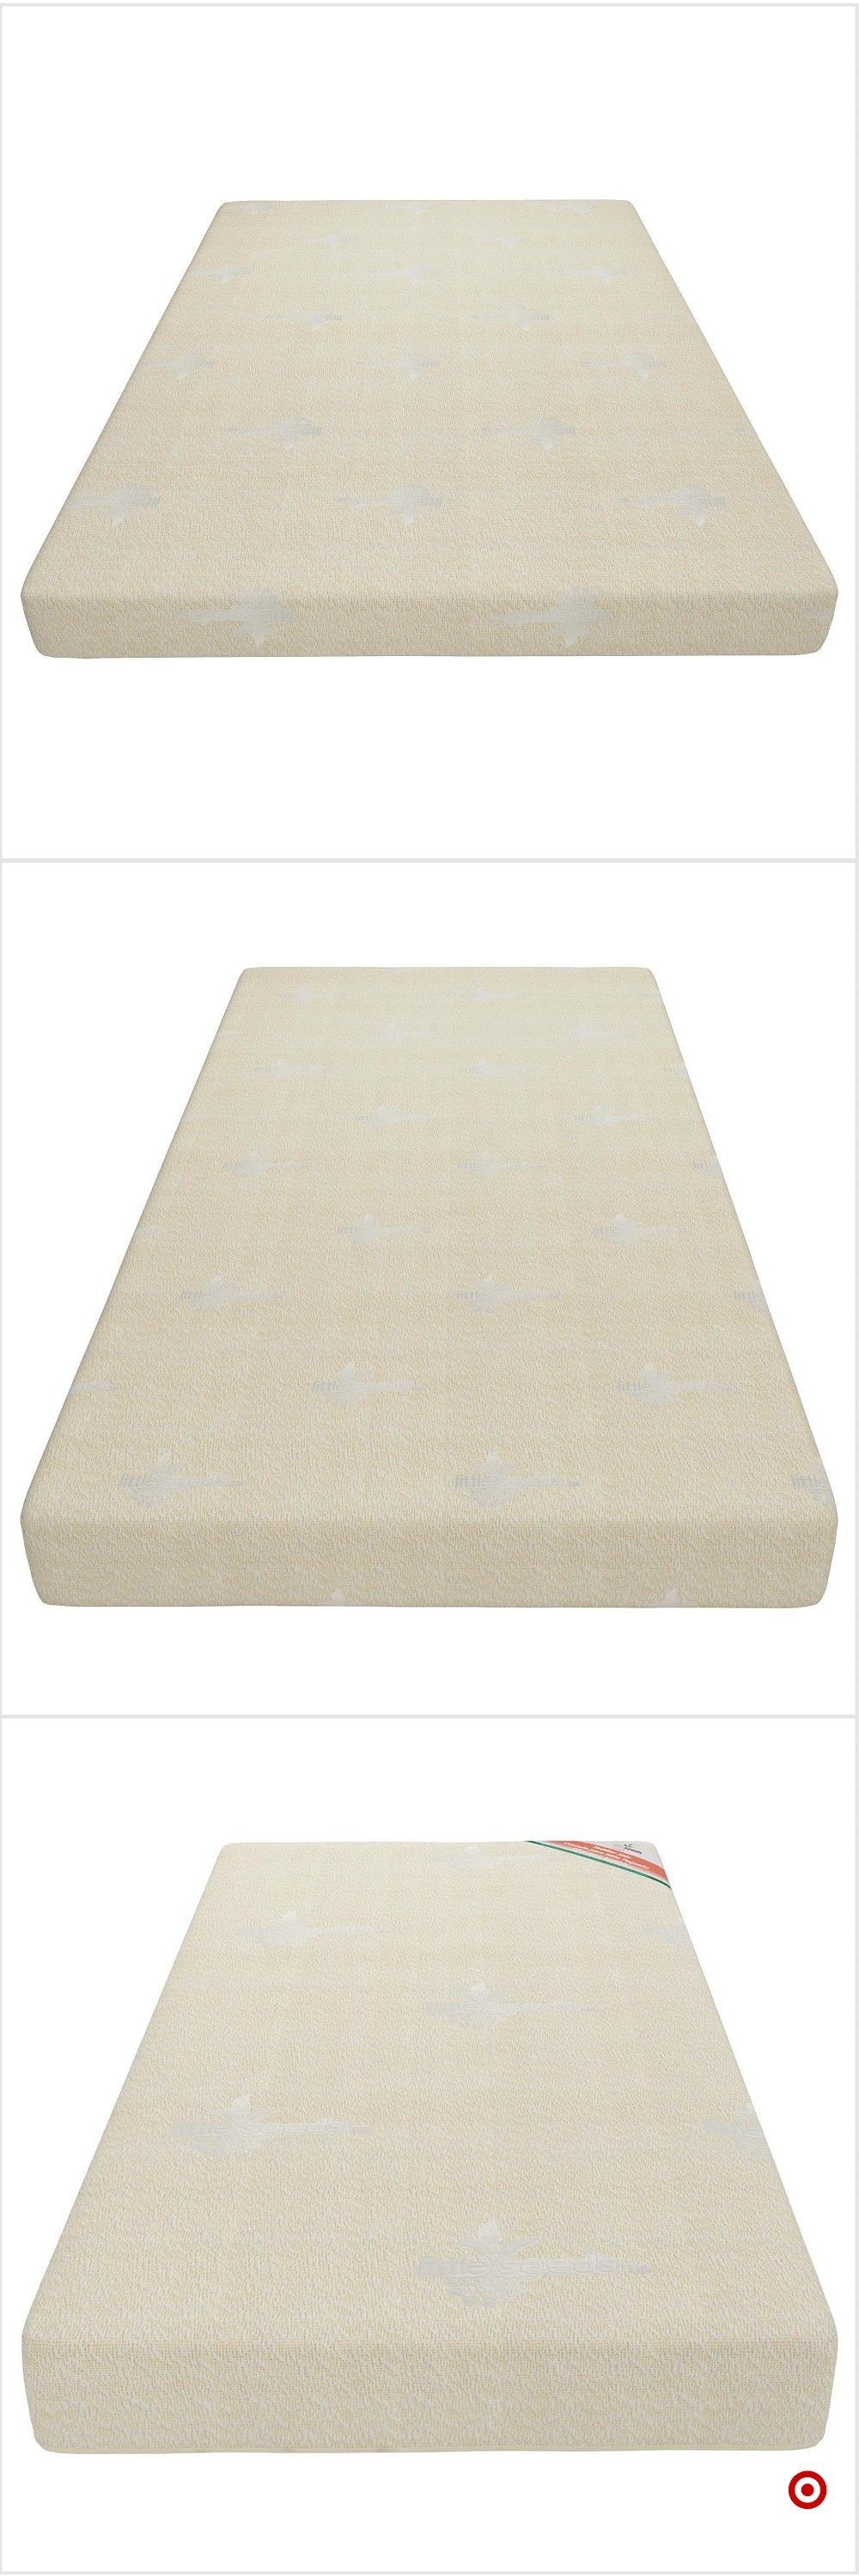 shop target for foam mattress you will love at great low prices